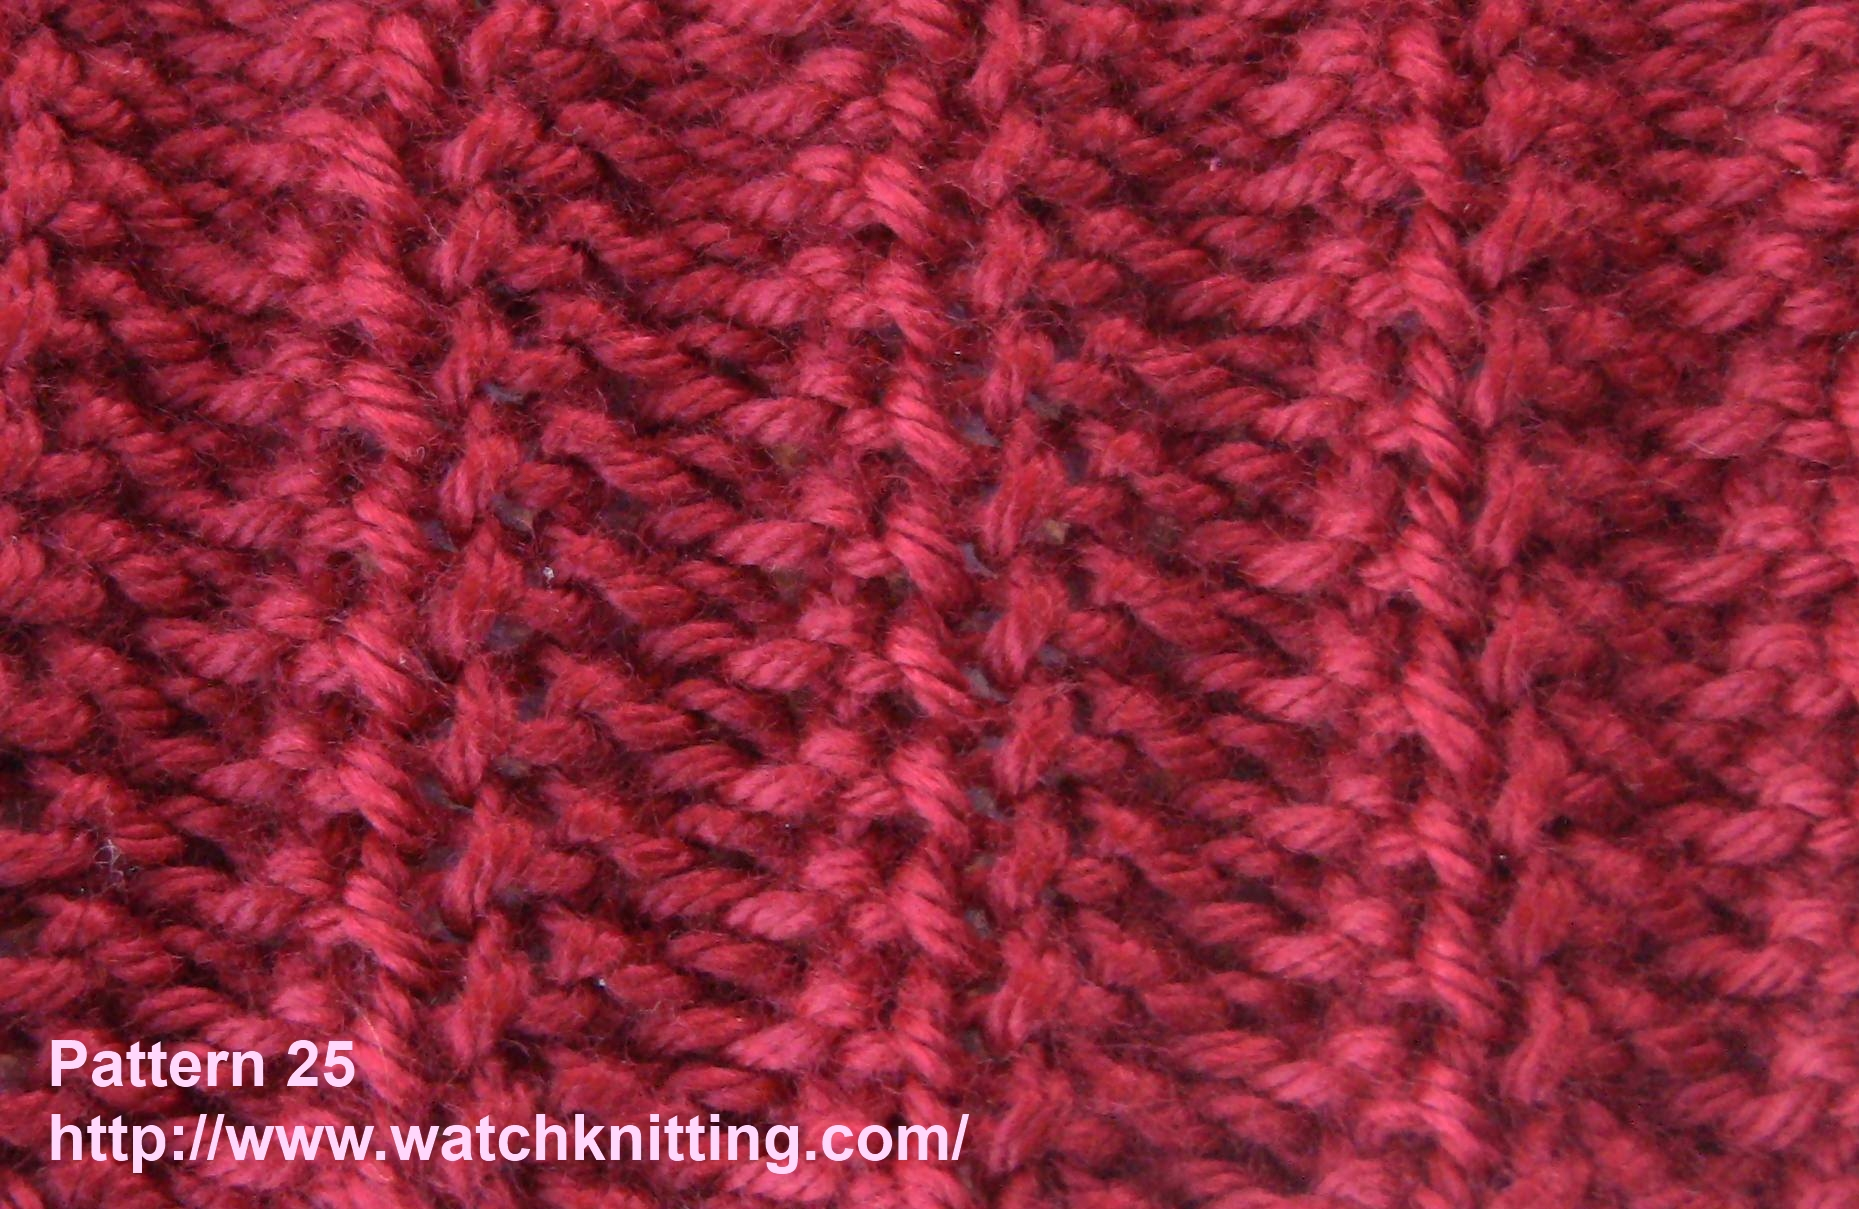 Knitting Basics For Beginners Watch knitting